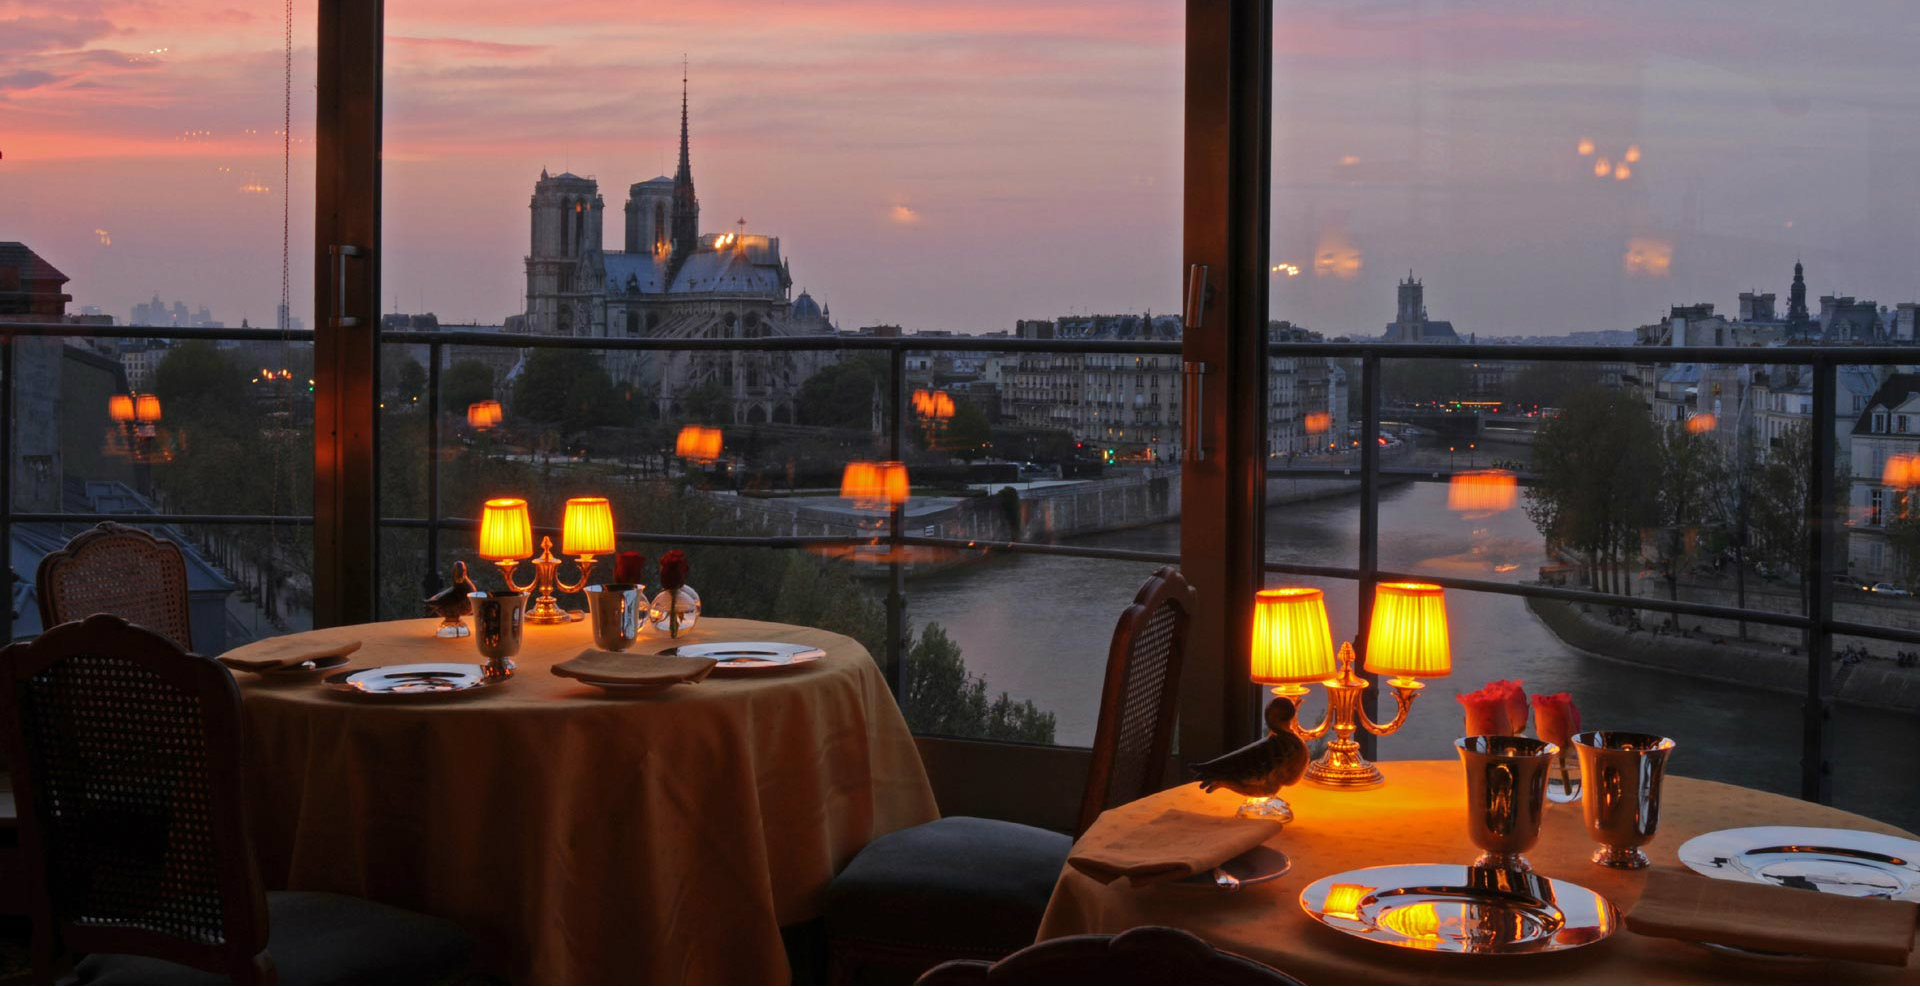 Find the best restaurants in Paris Chandeliers with Crystals Chandeliers with Crystals to sparkle your living room Find the best restaurants in Paris cover Chandeliers with Crystals Chandeliers with Crystals to sparkle your living room Find the best restaurants in Paris cover